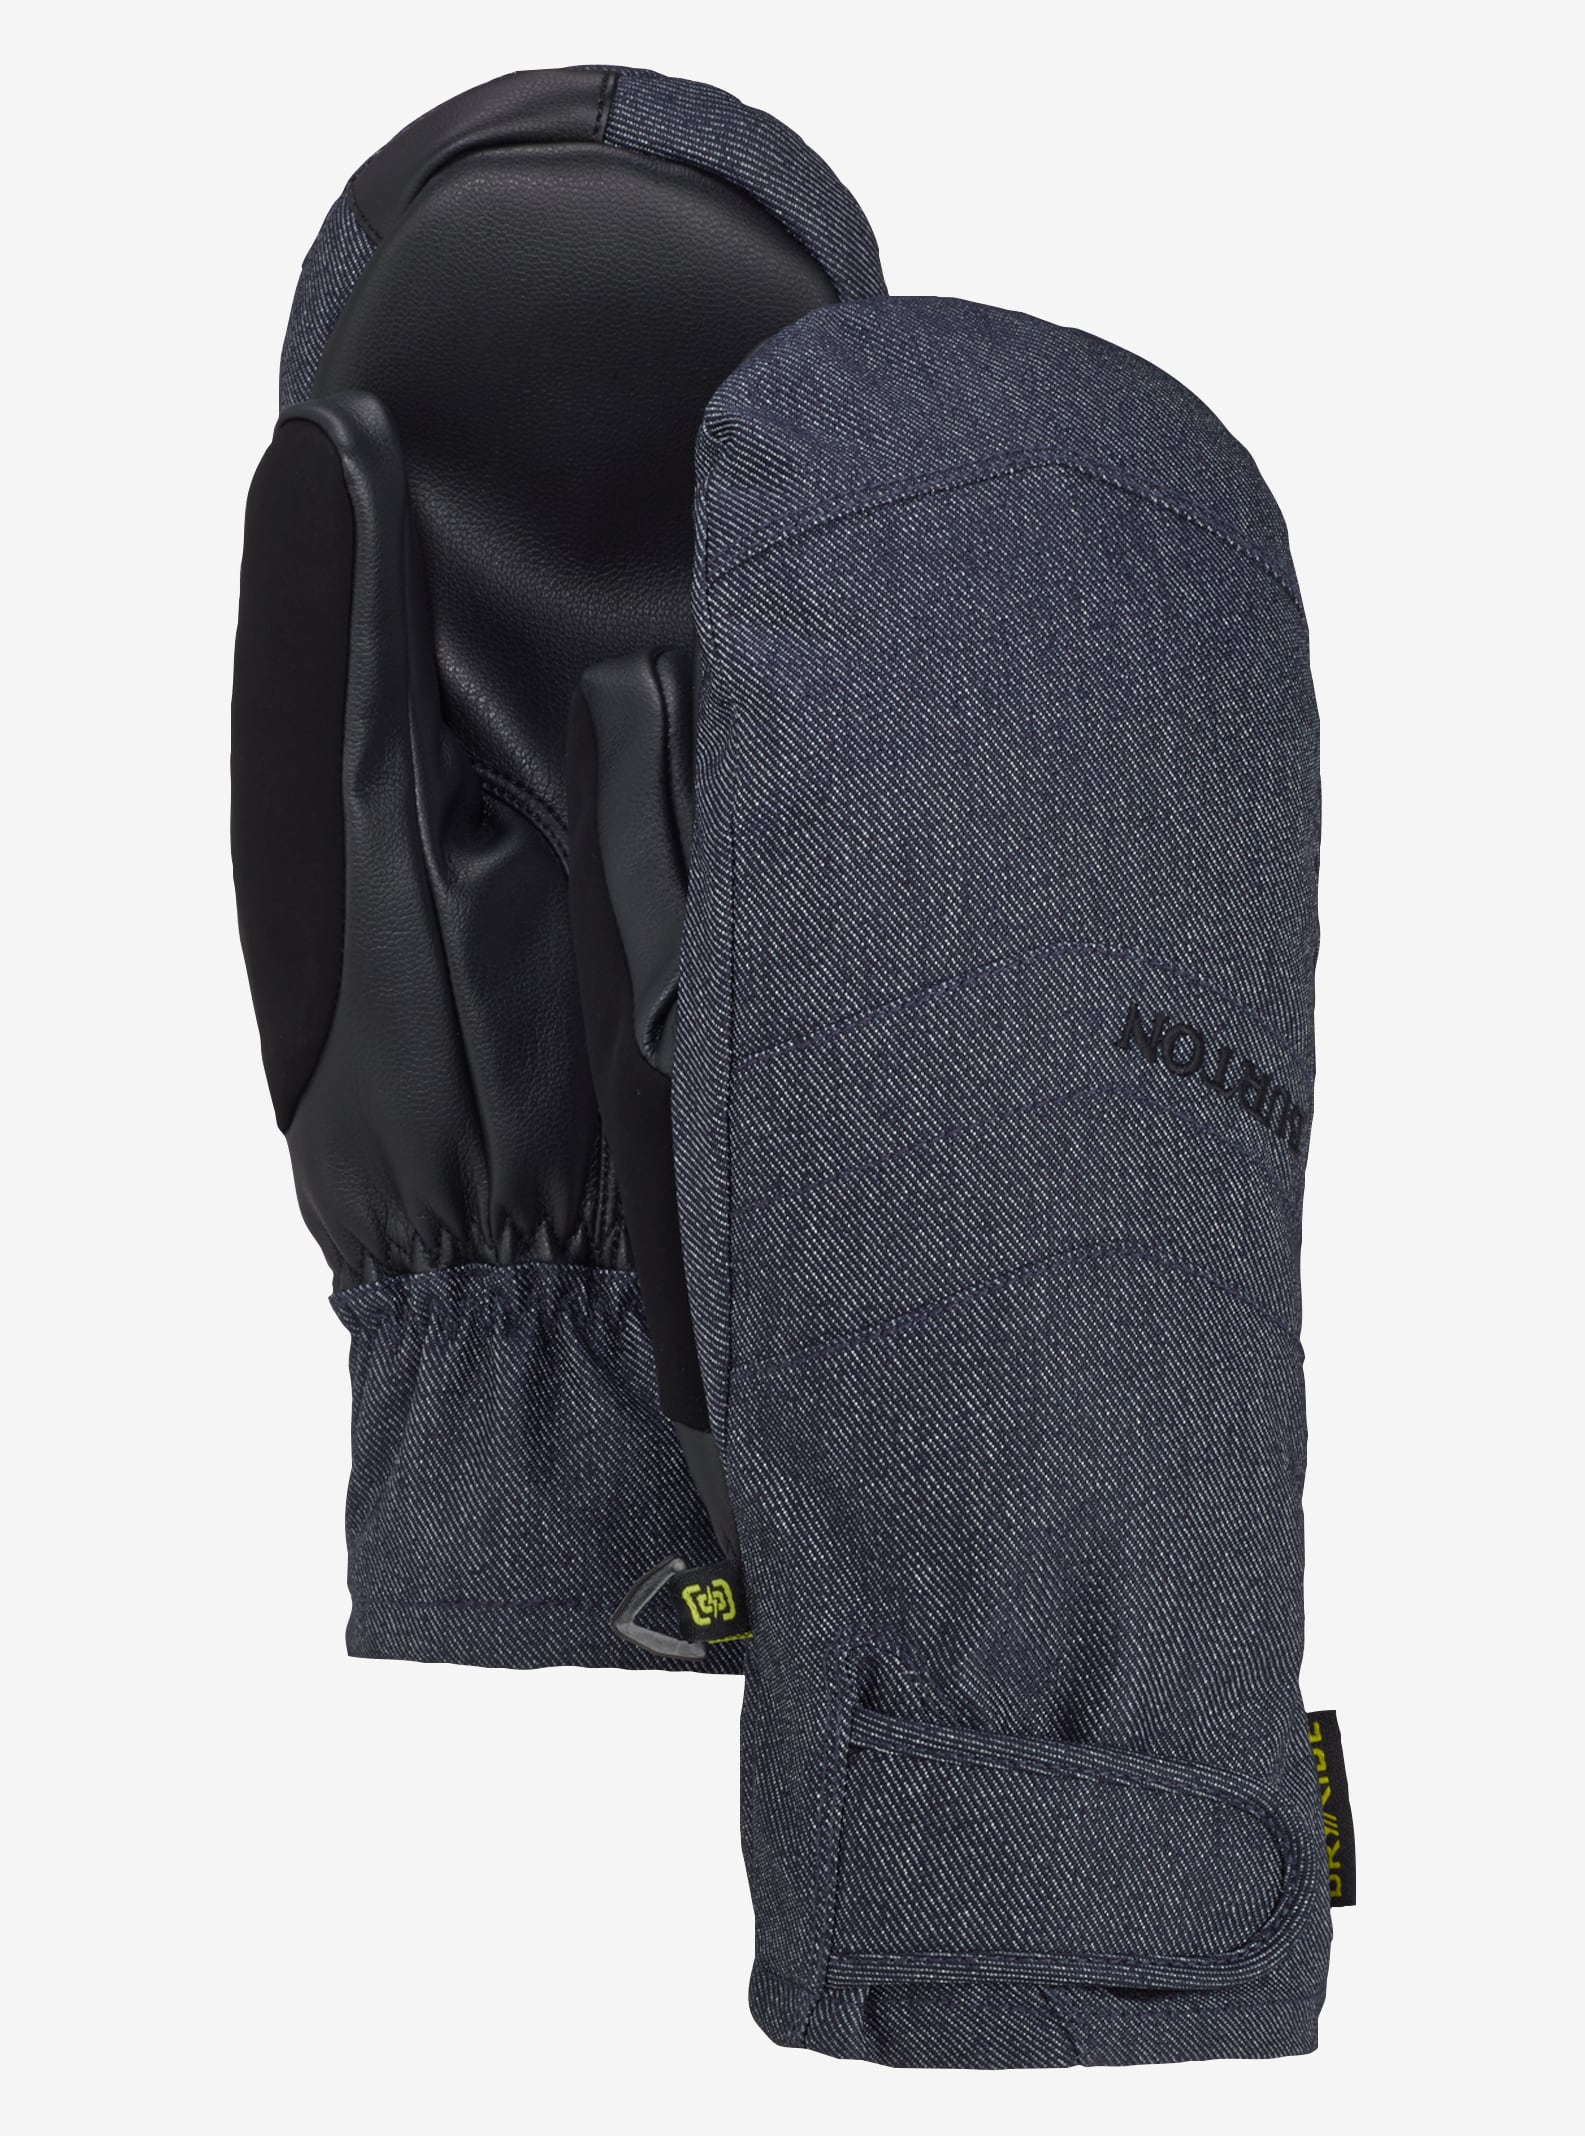 Women's Burton Prospect Under Mitt shown in Denim